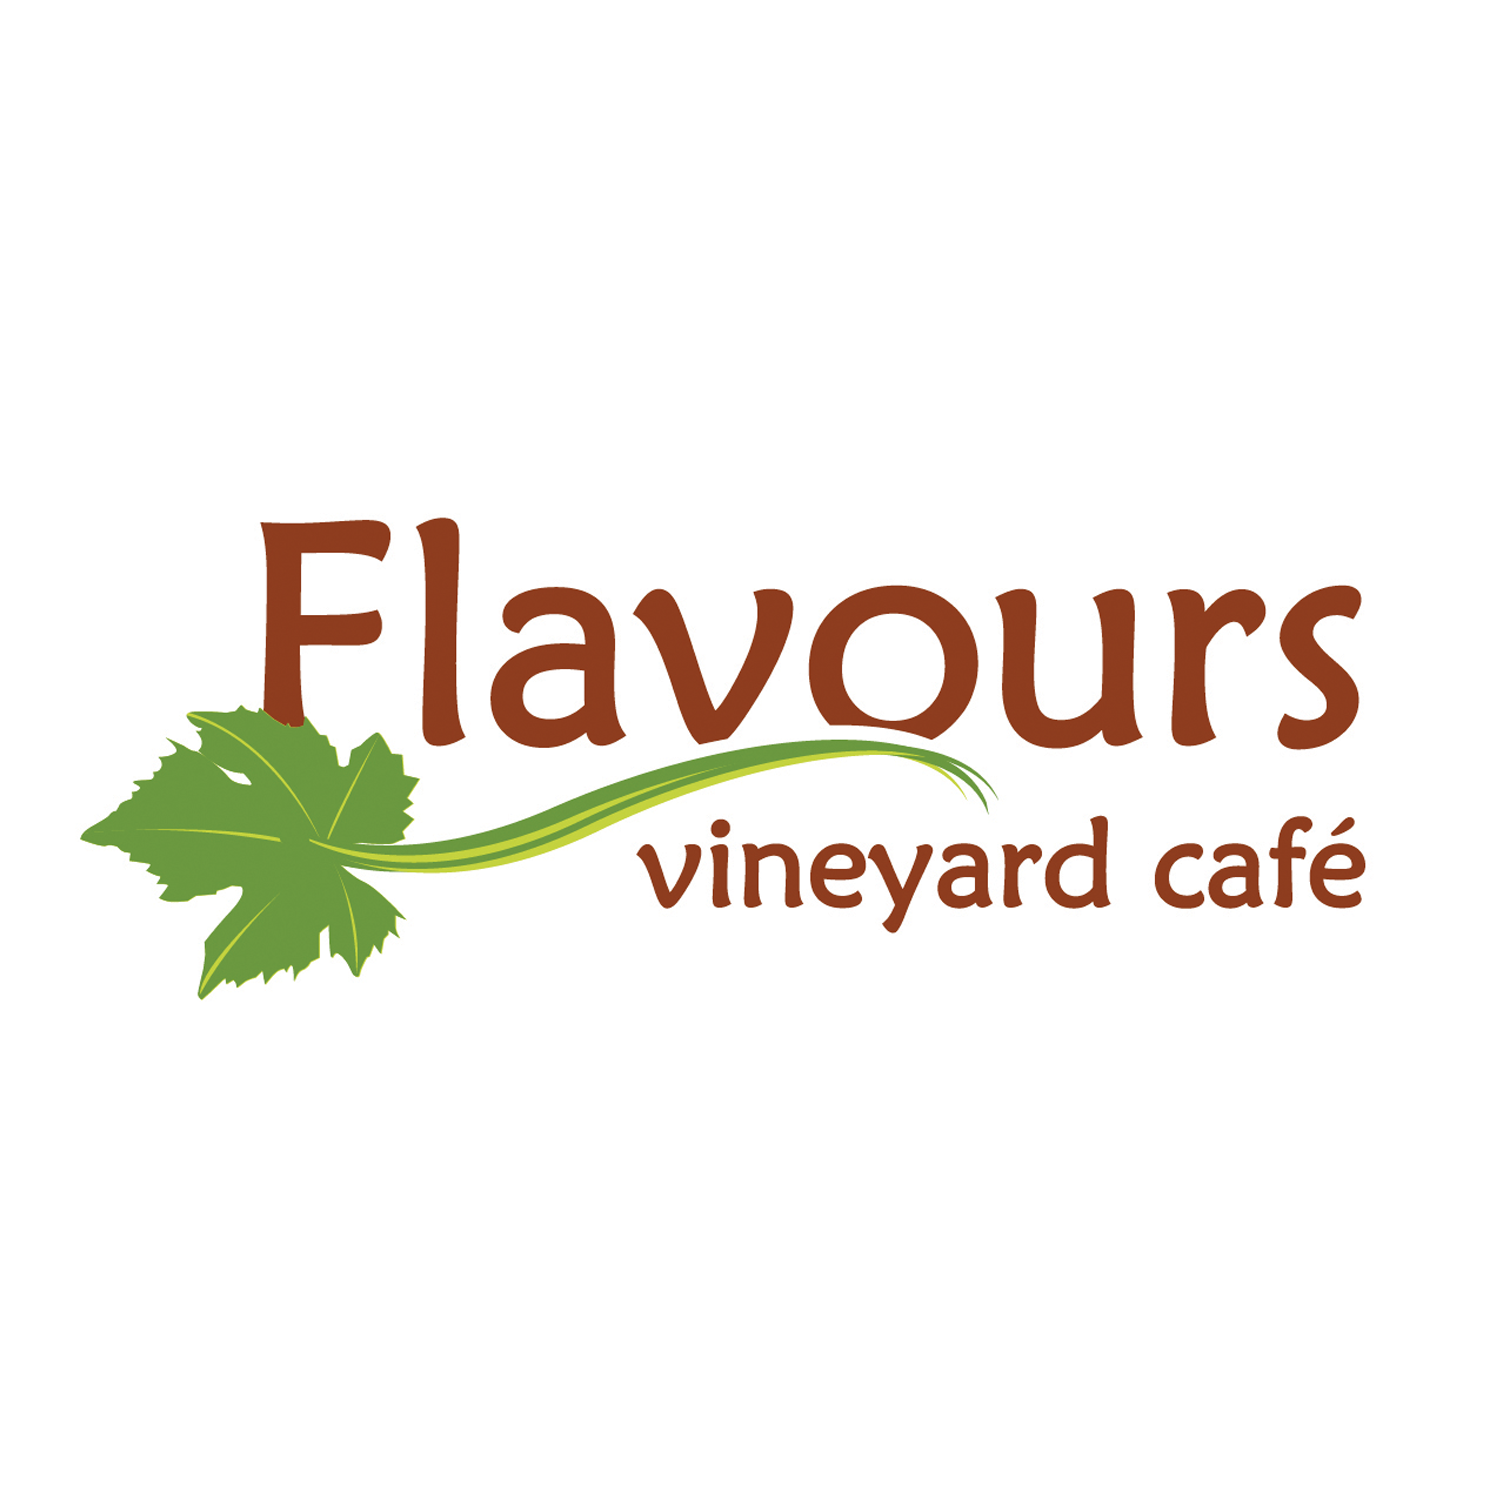 LOGO DESIGN FOR FLAVOURS VINEYARD CAFE